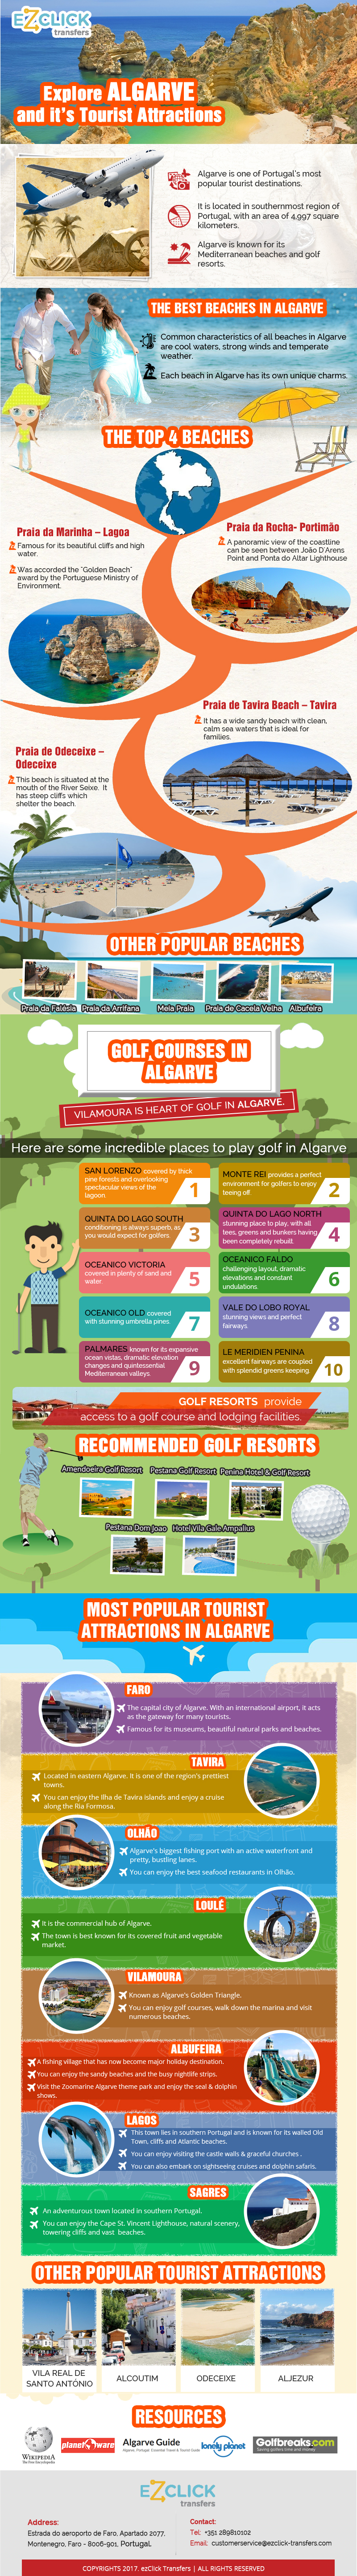 Why Holidaying in Algarve is a Bucket-List Must! - Infographic